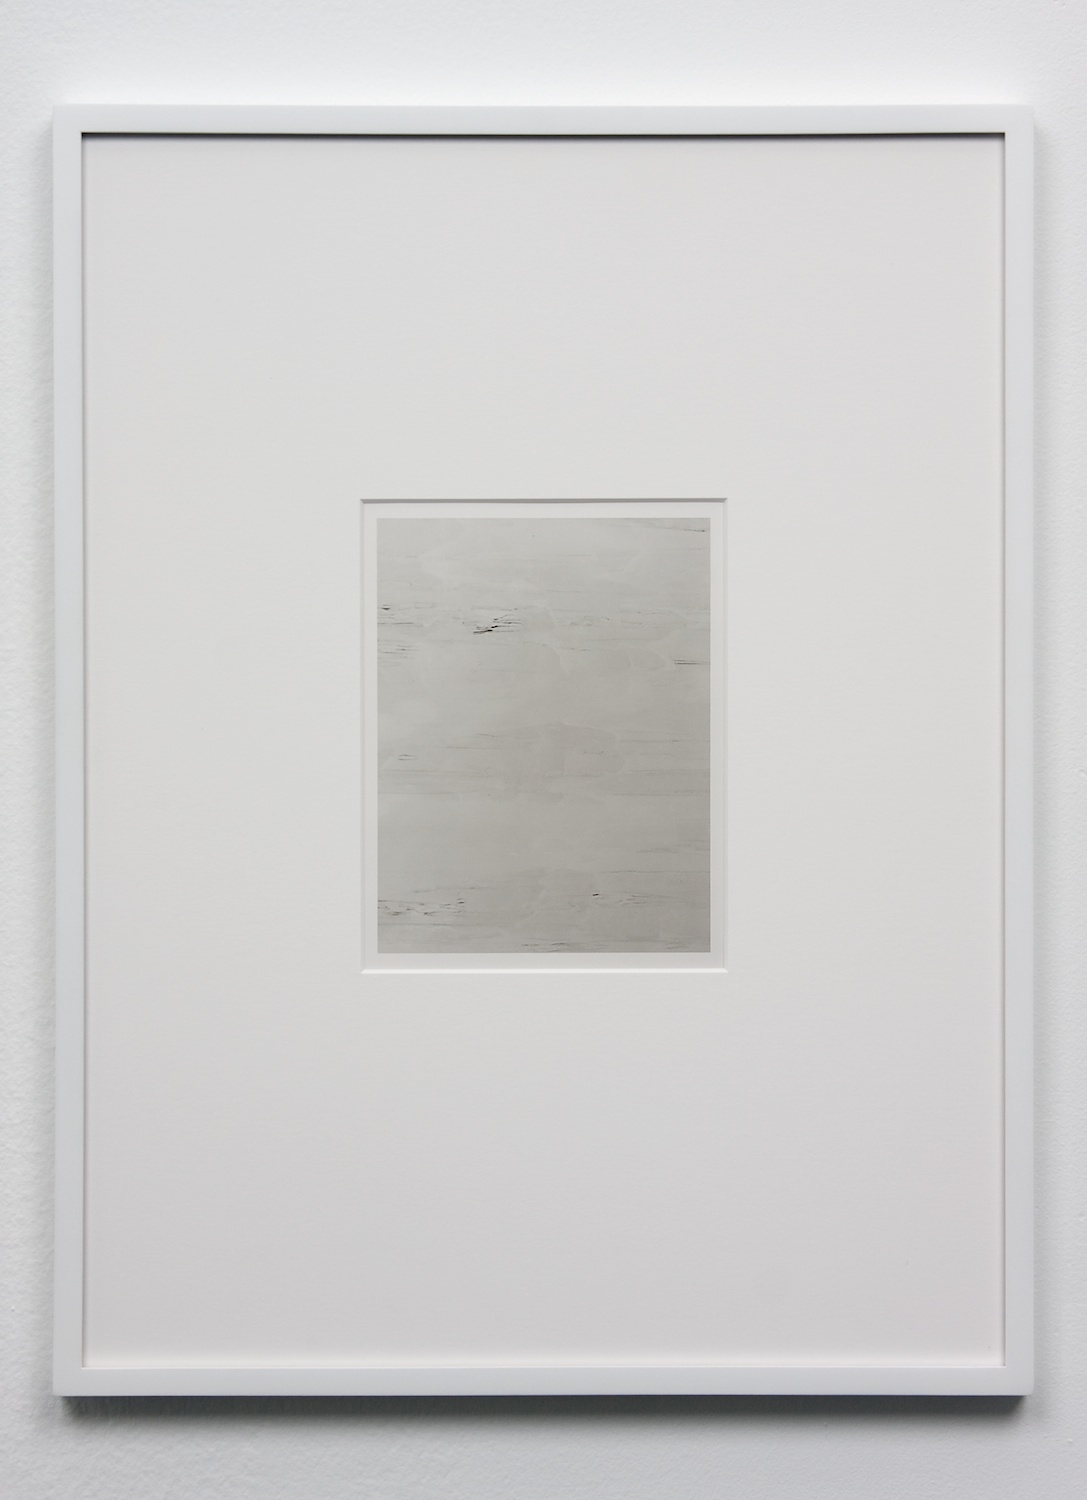 Anthony Pearson  Untitled (Solarization)  2010 Framed solarized silver gelatin photograph 17 ½h x 13 ¼w in P233